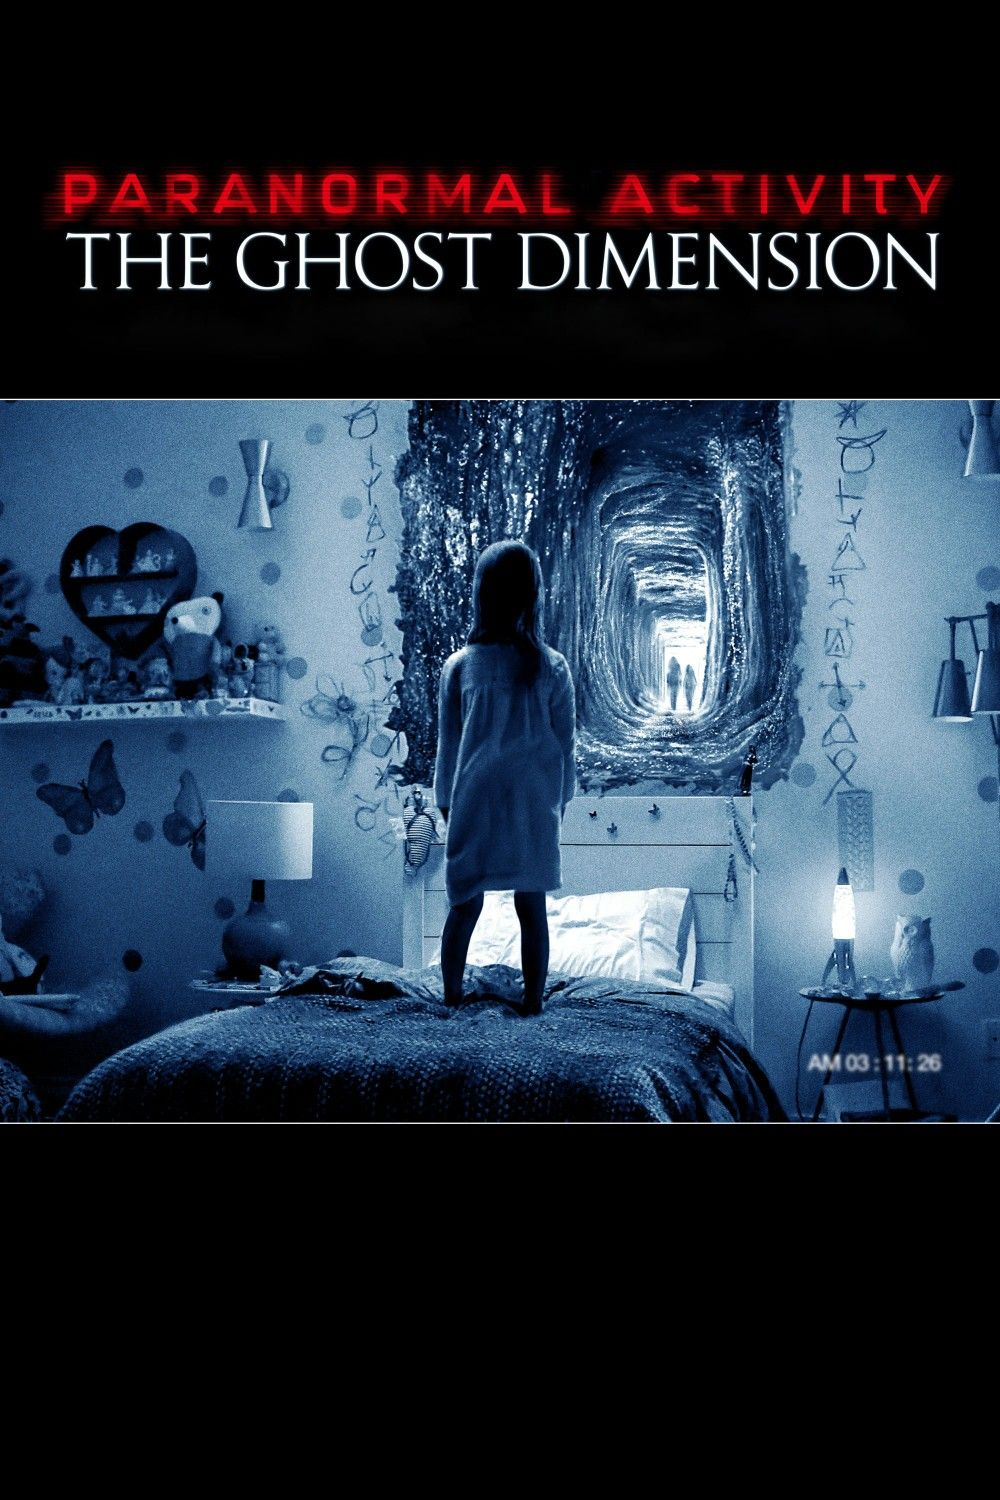 Pin By Renne Correa On Peliculas Paranormal Activity Paranormal Hd Movies